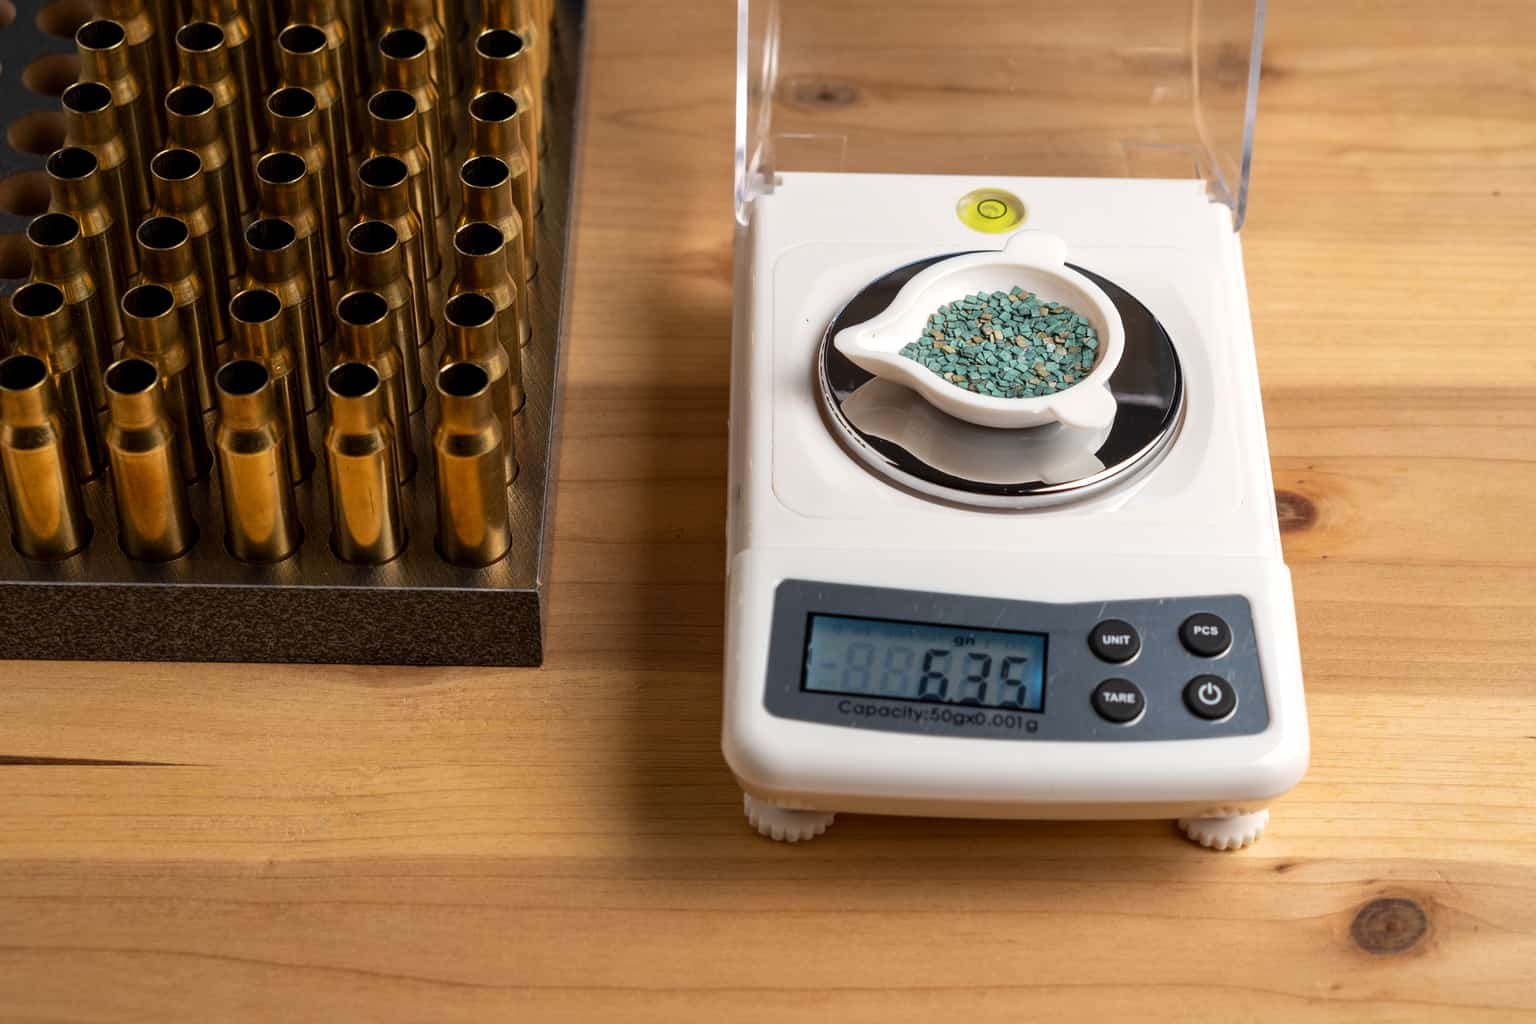 Gunpowder scales being weighed on a reloading scale